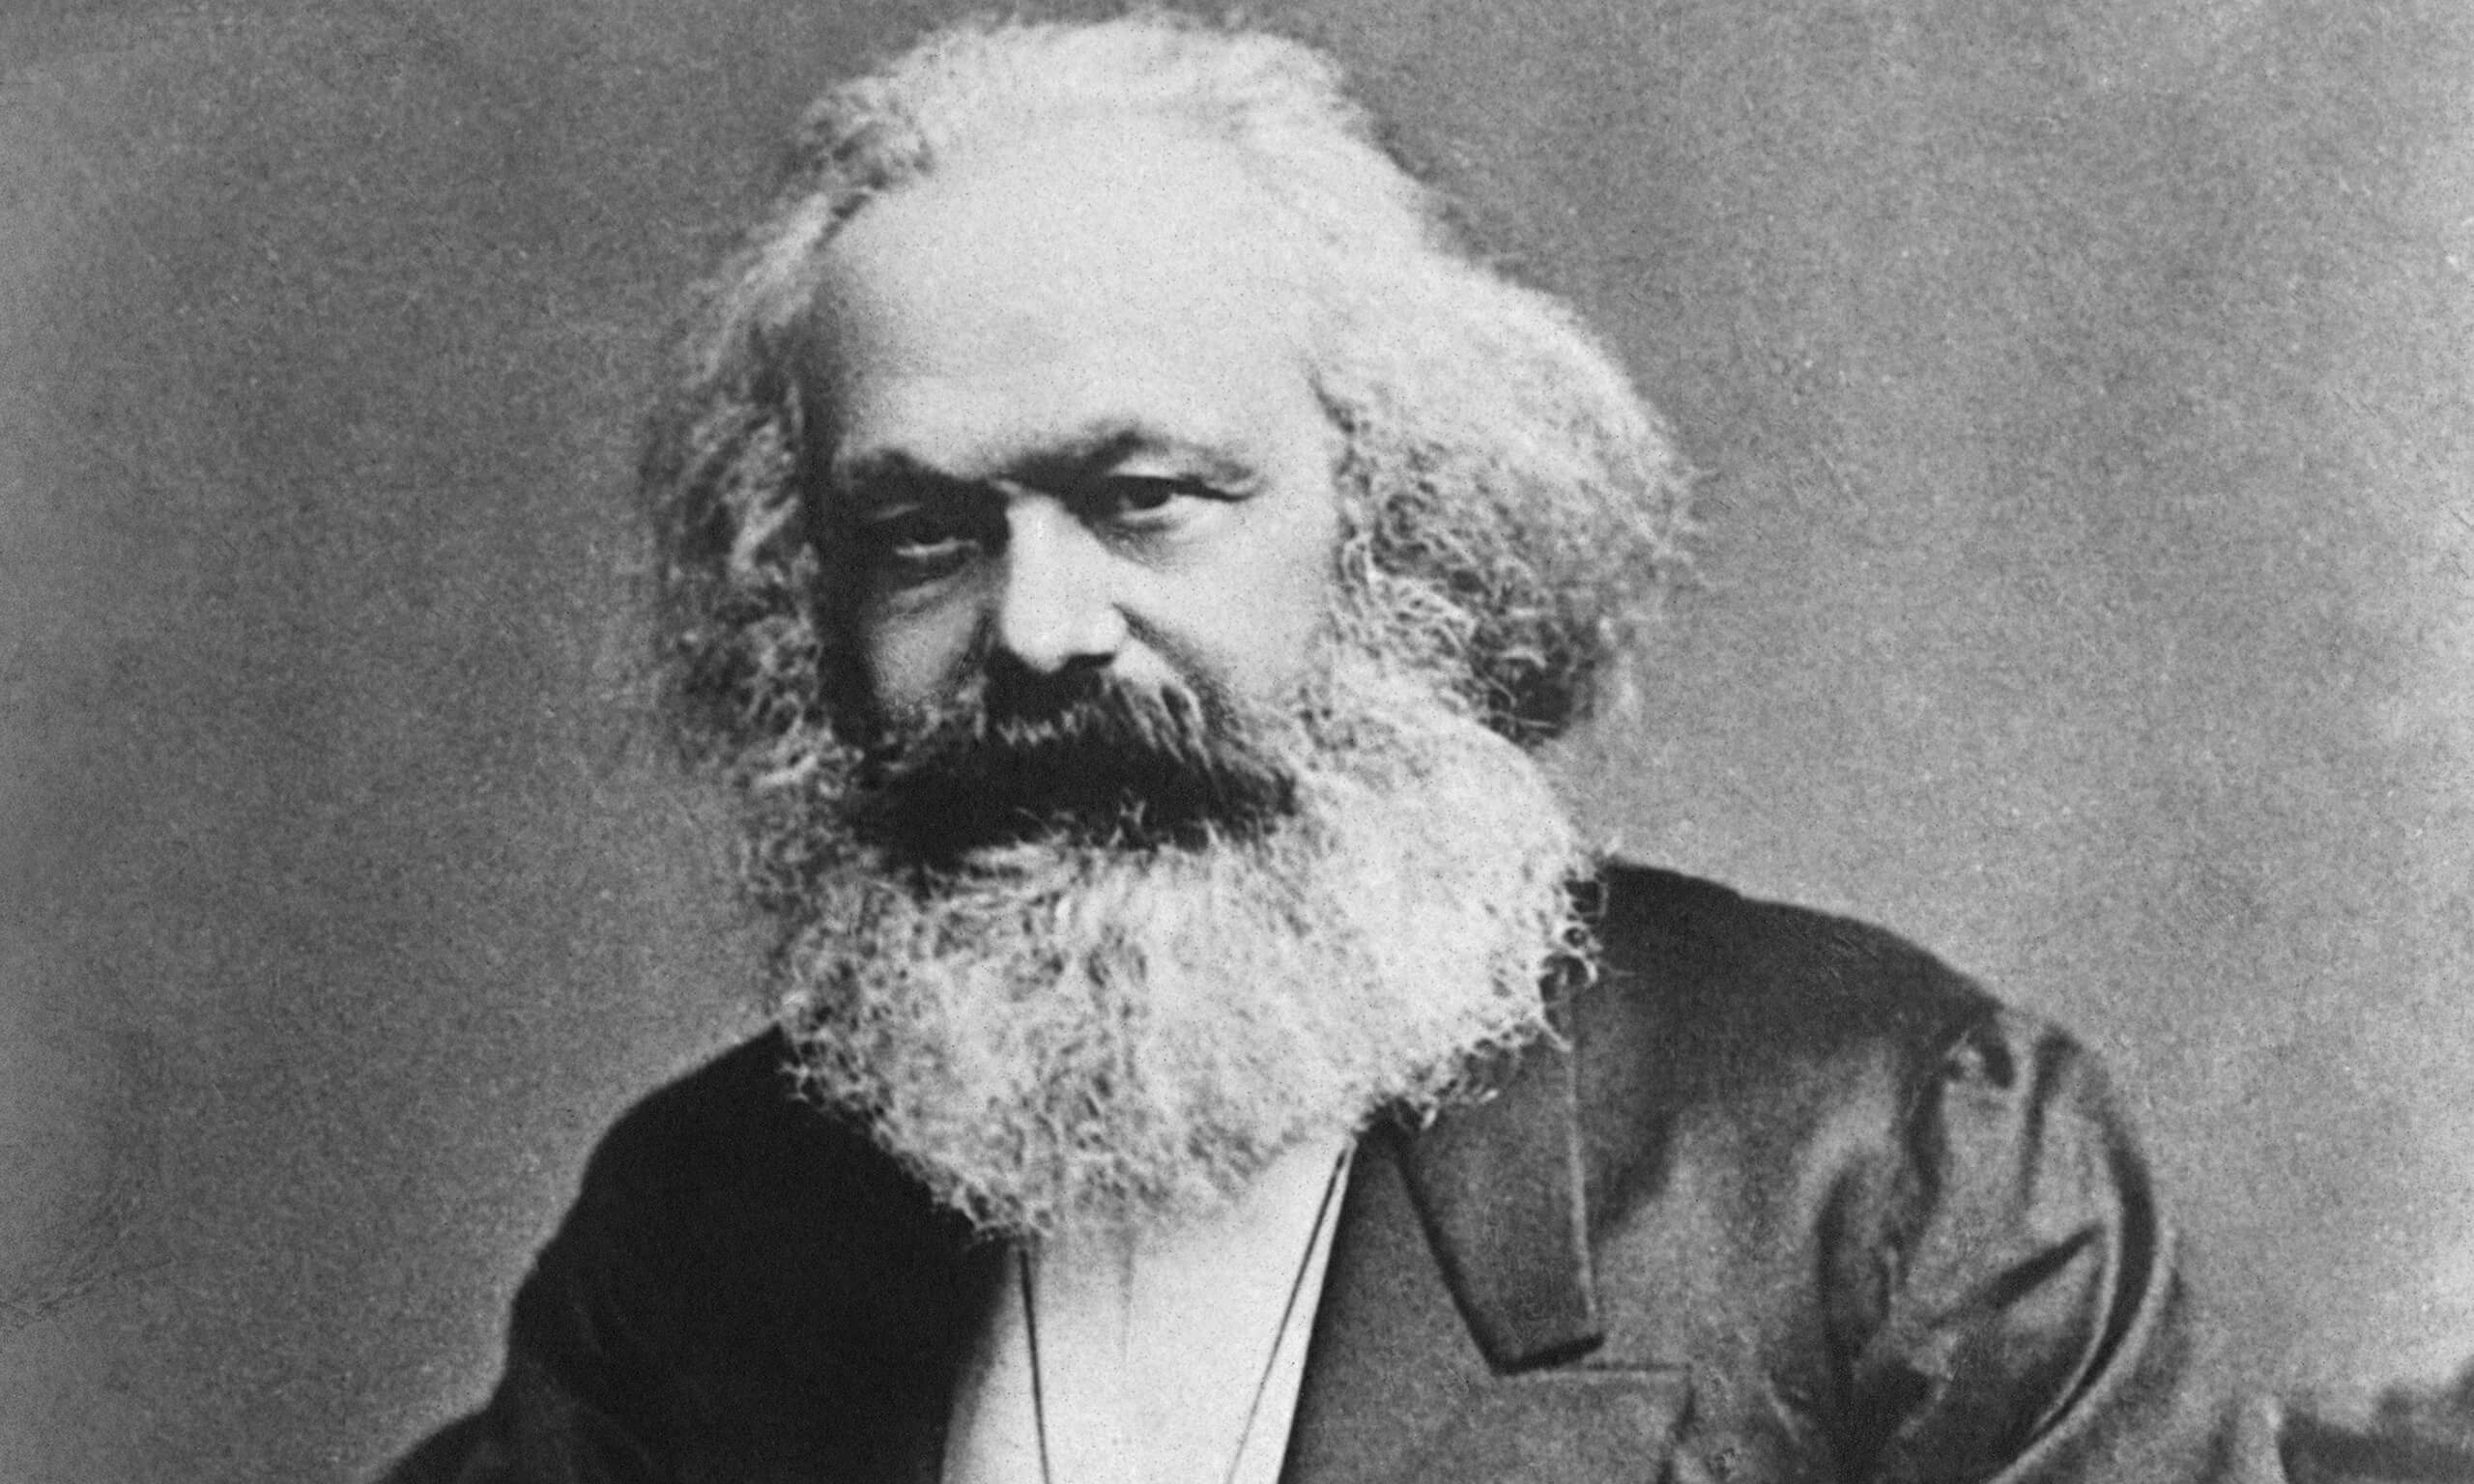 Karl Marx and his island of thoughts